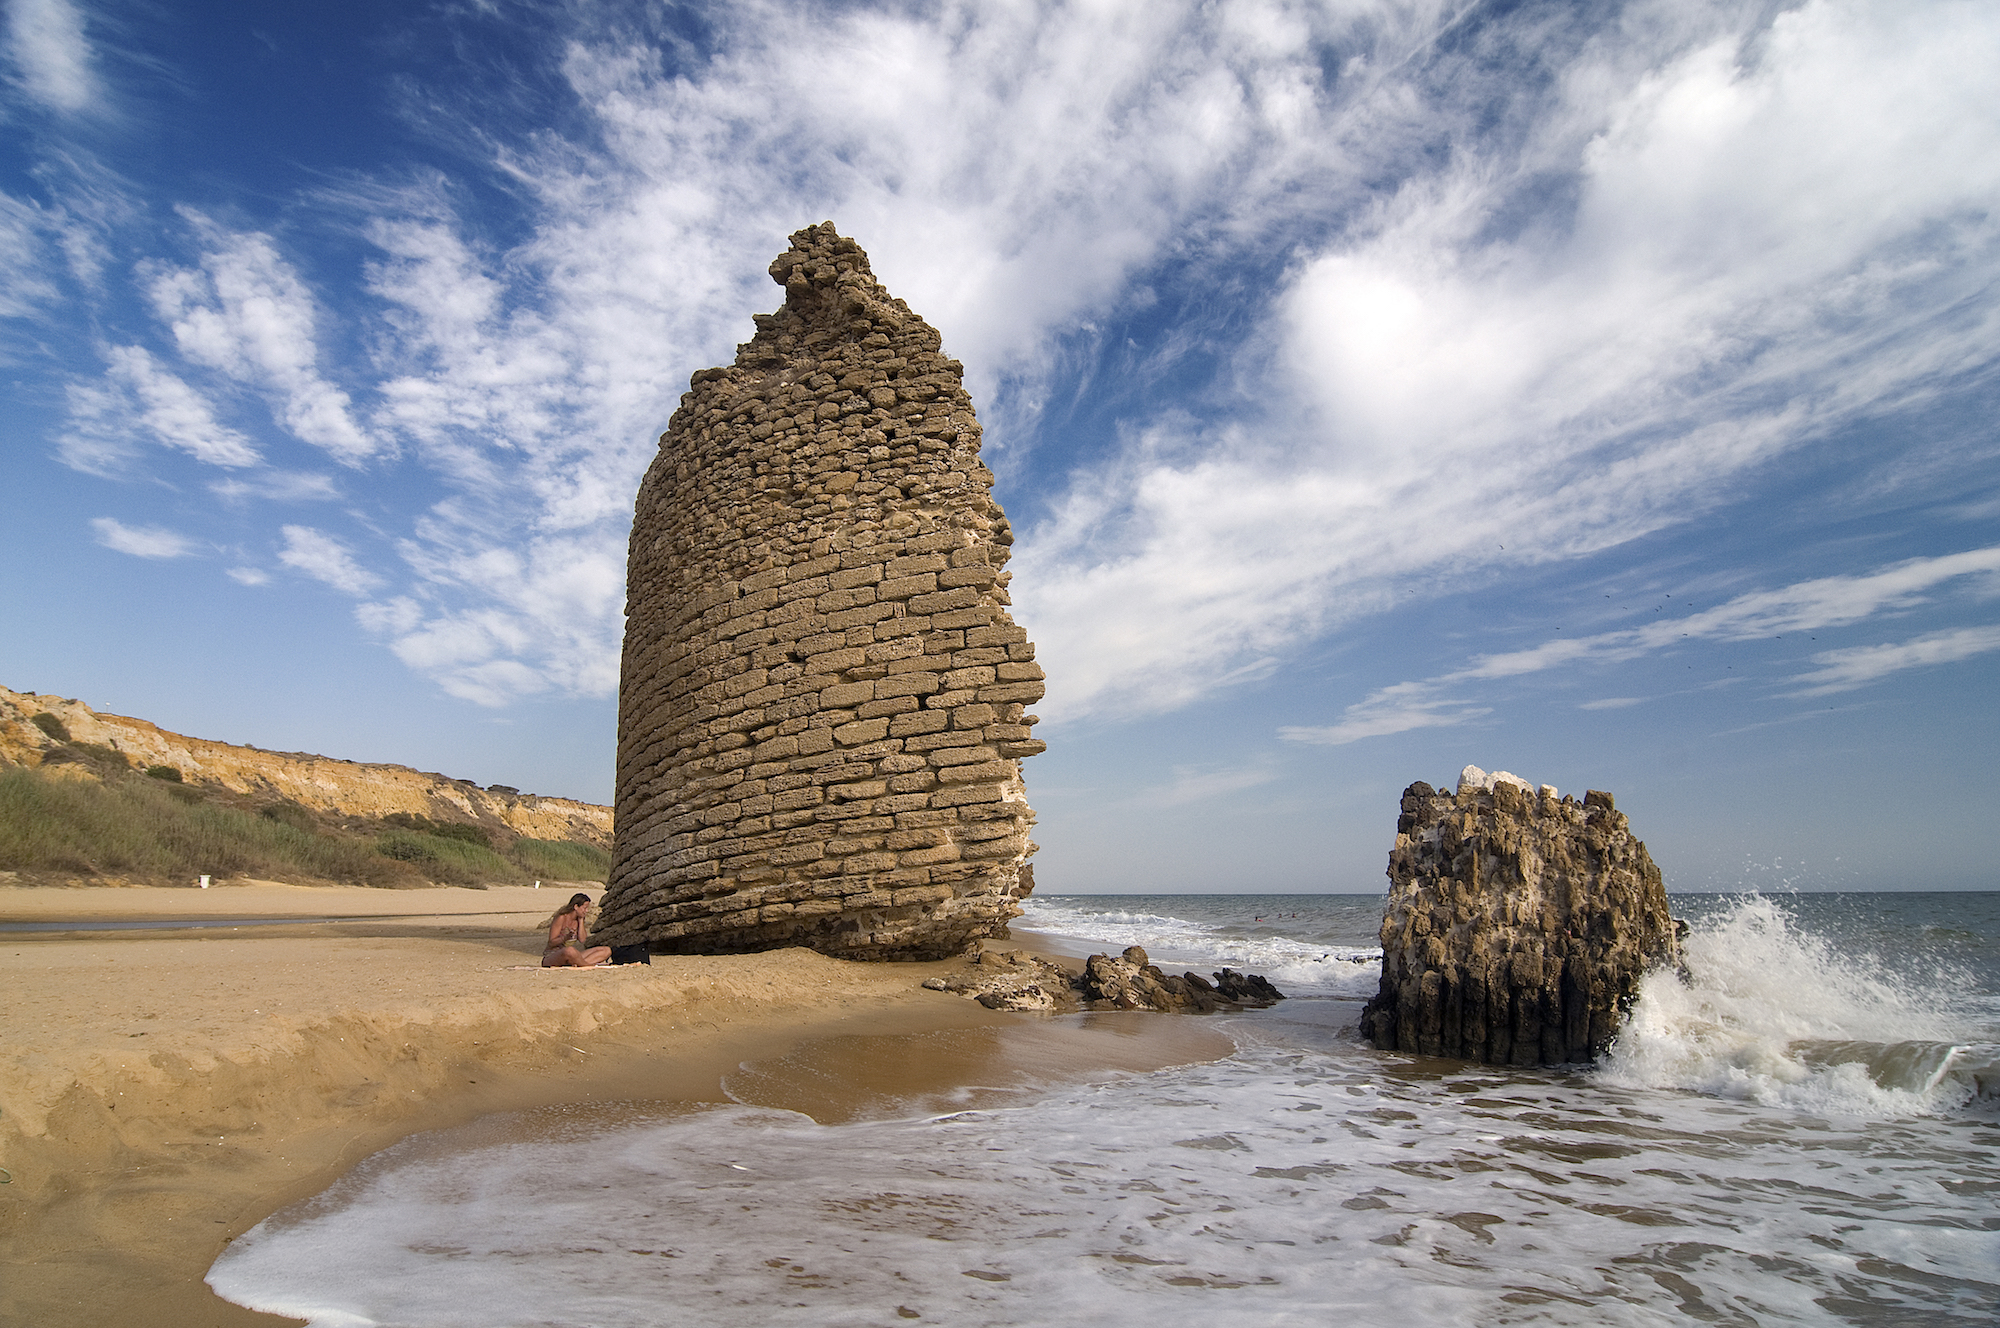 Parrot Tower Beach - Built to ward off pirates (not parrots but maybe the pirates owned some), the tower straddles the borders of four towns, allowing Palos de la Frontera, Moguer, Lucena del Puerto and Almonte to claim it as their own.